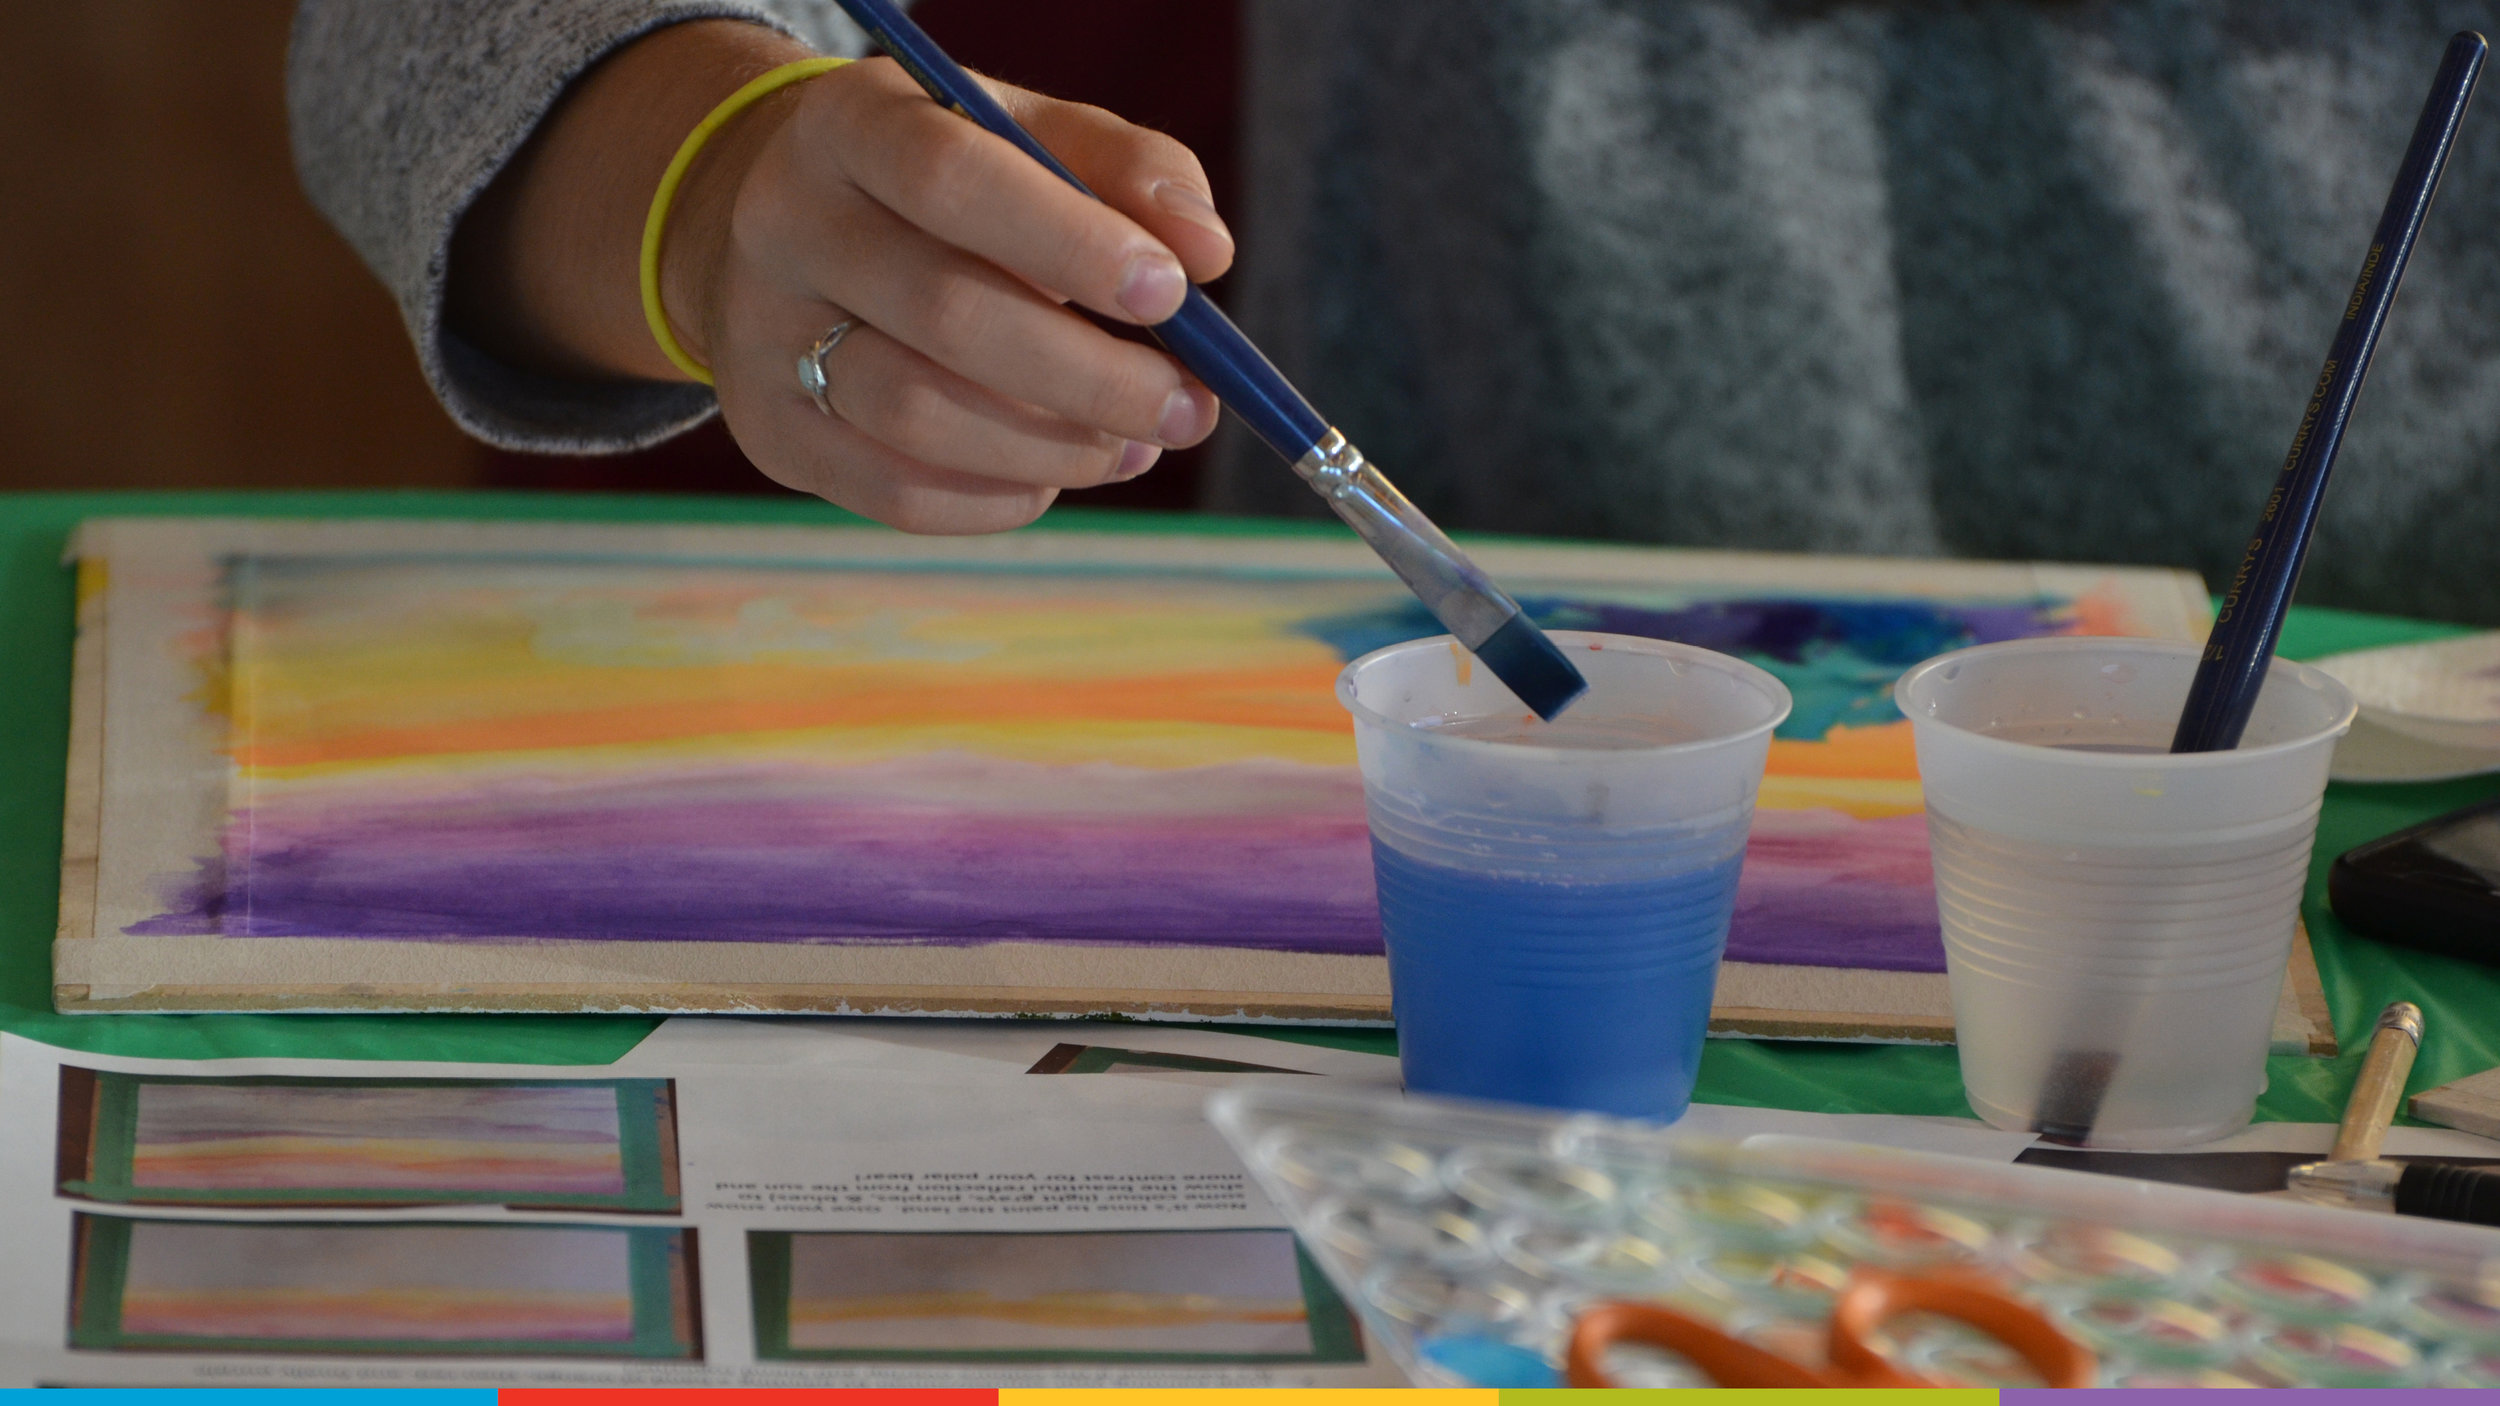 A photo of a paintbrush and a watercolour painting.